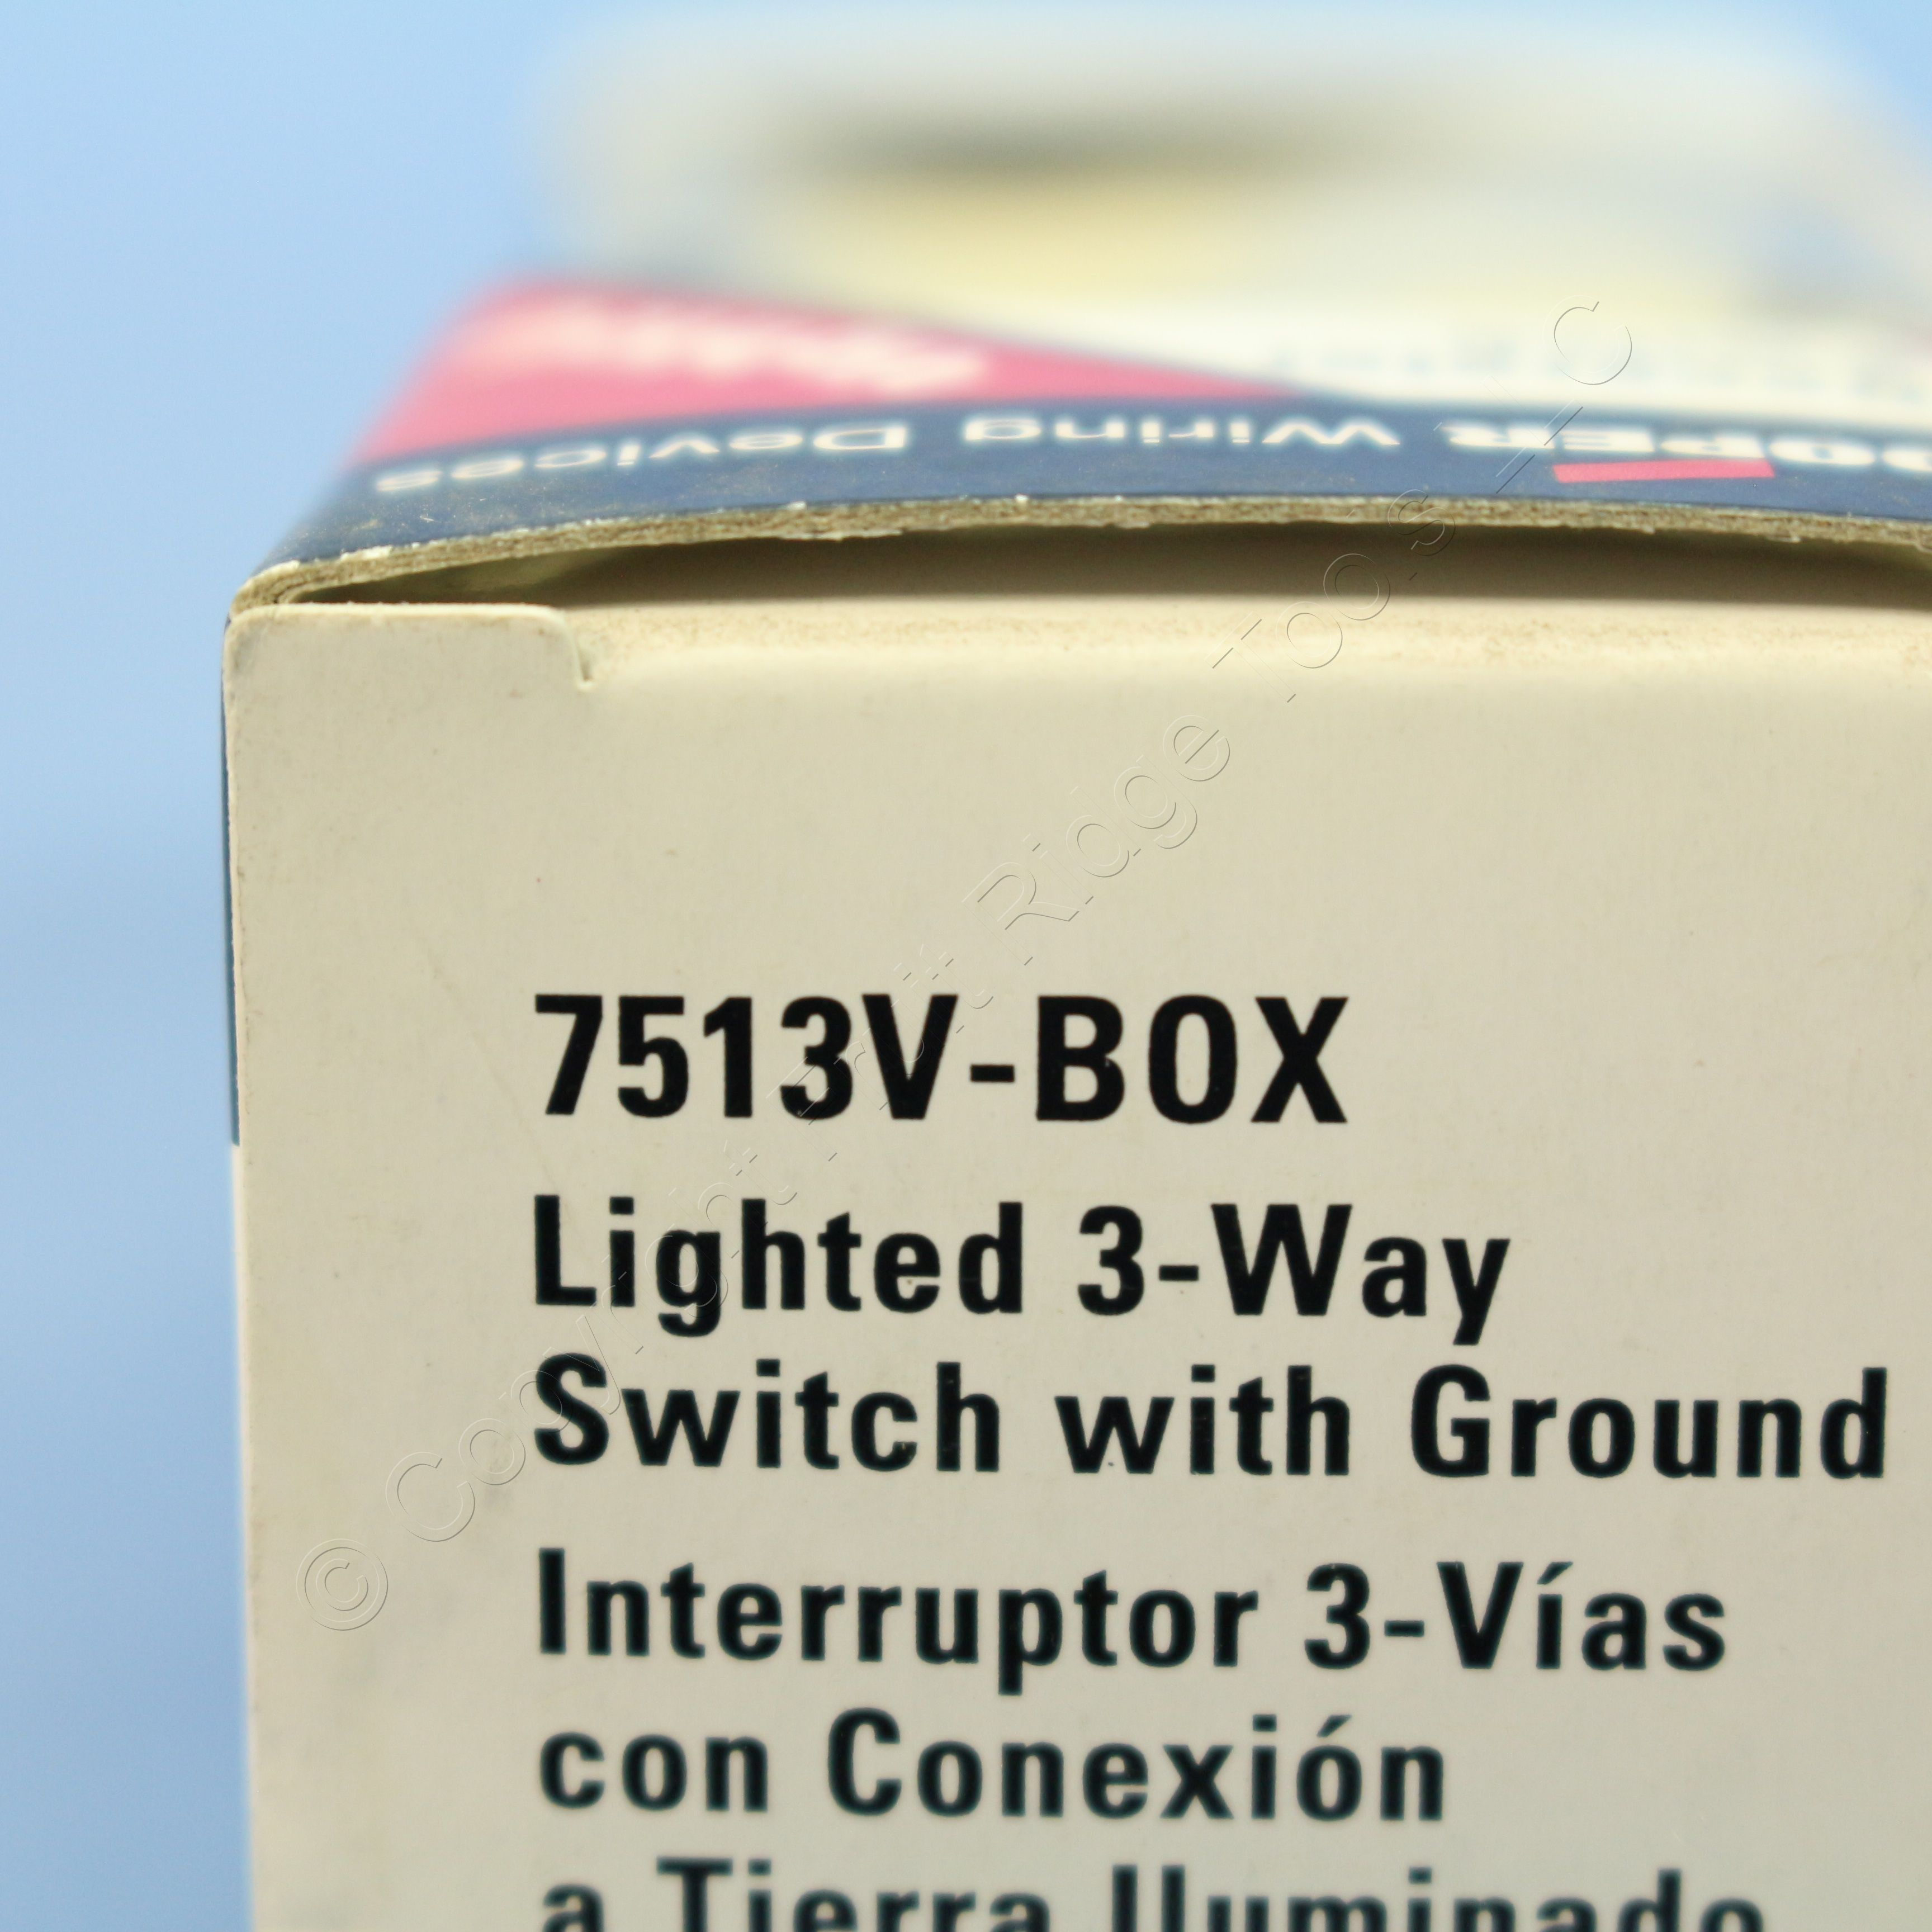 Shop Cooper Ivory Illuminated 3 Way Decorator Rocker Wall Wiring Quiet Toggle Switch Single Pole Lighted 15 A 120 V Light 15a 7513v Fruit Ridge Tools